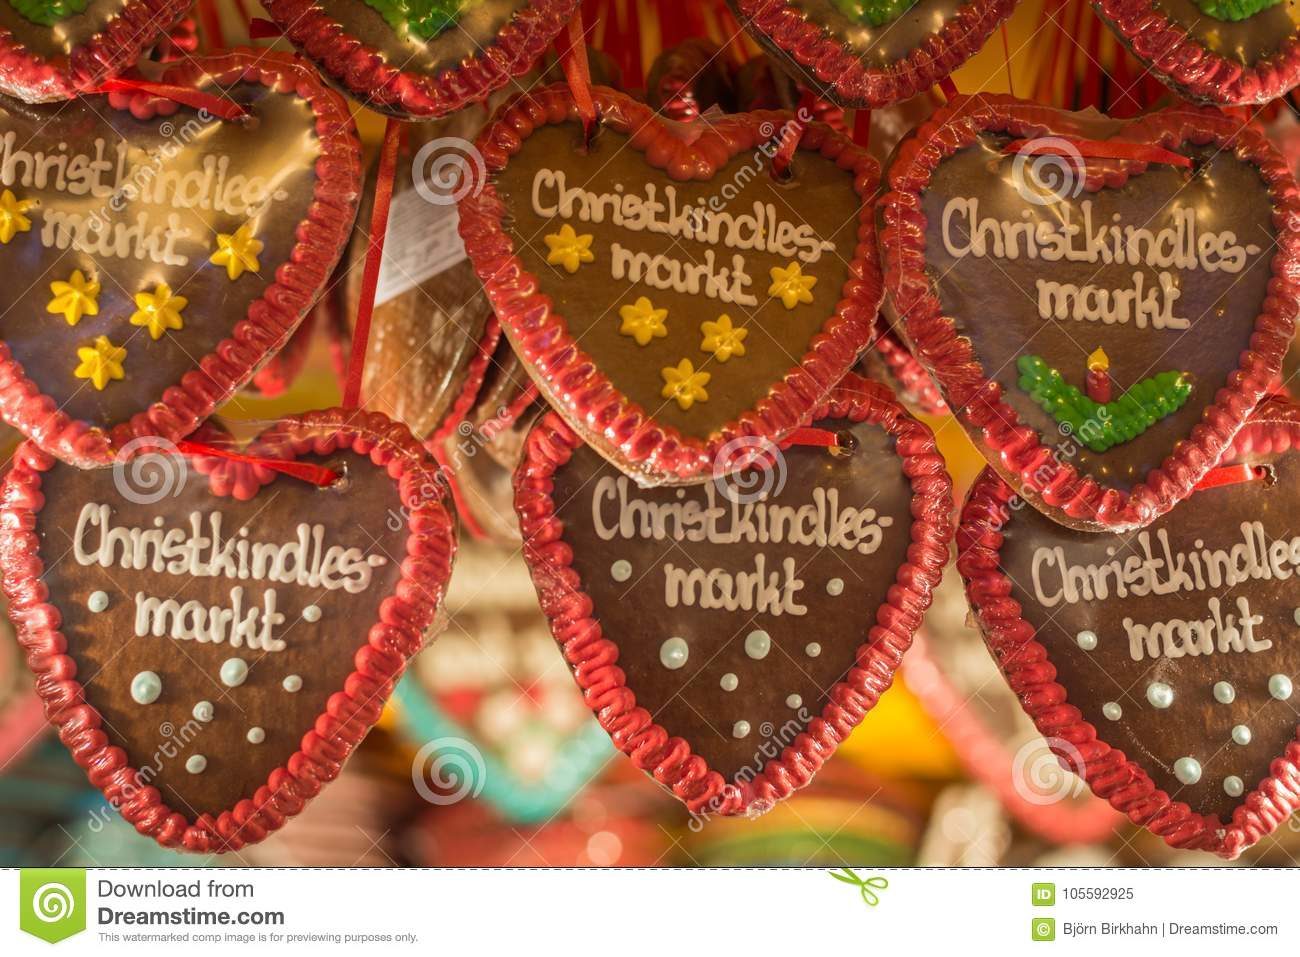 Gingerbread Hearts With Christmas Market In German On It At A St